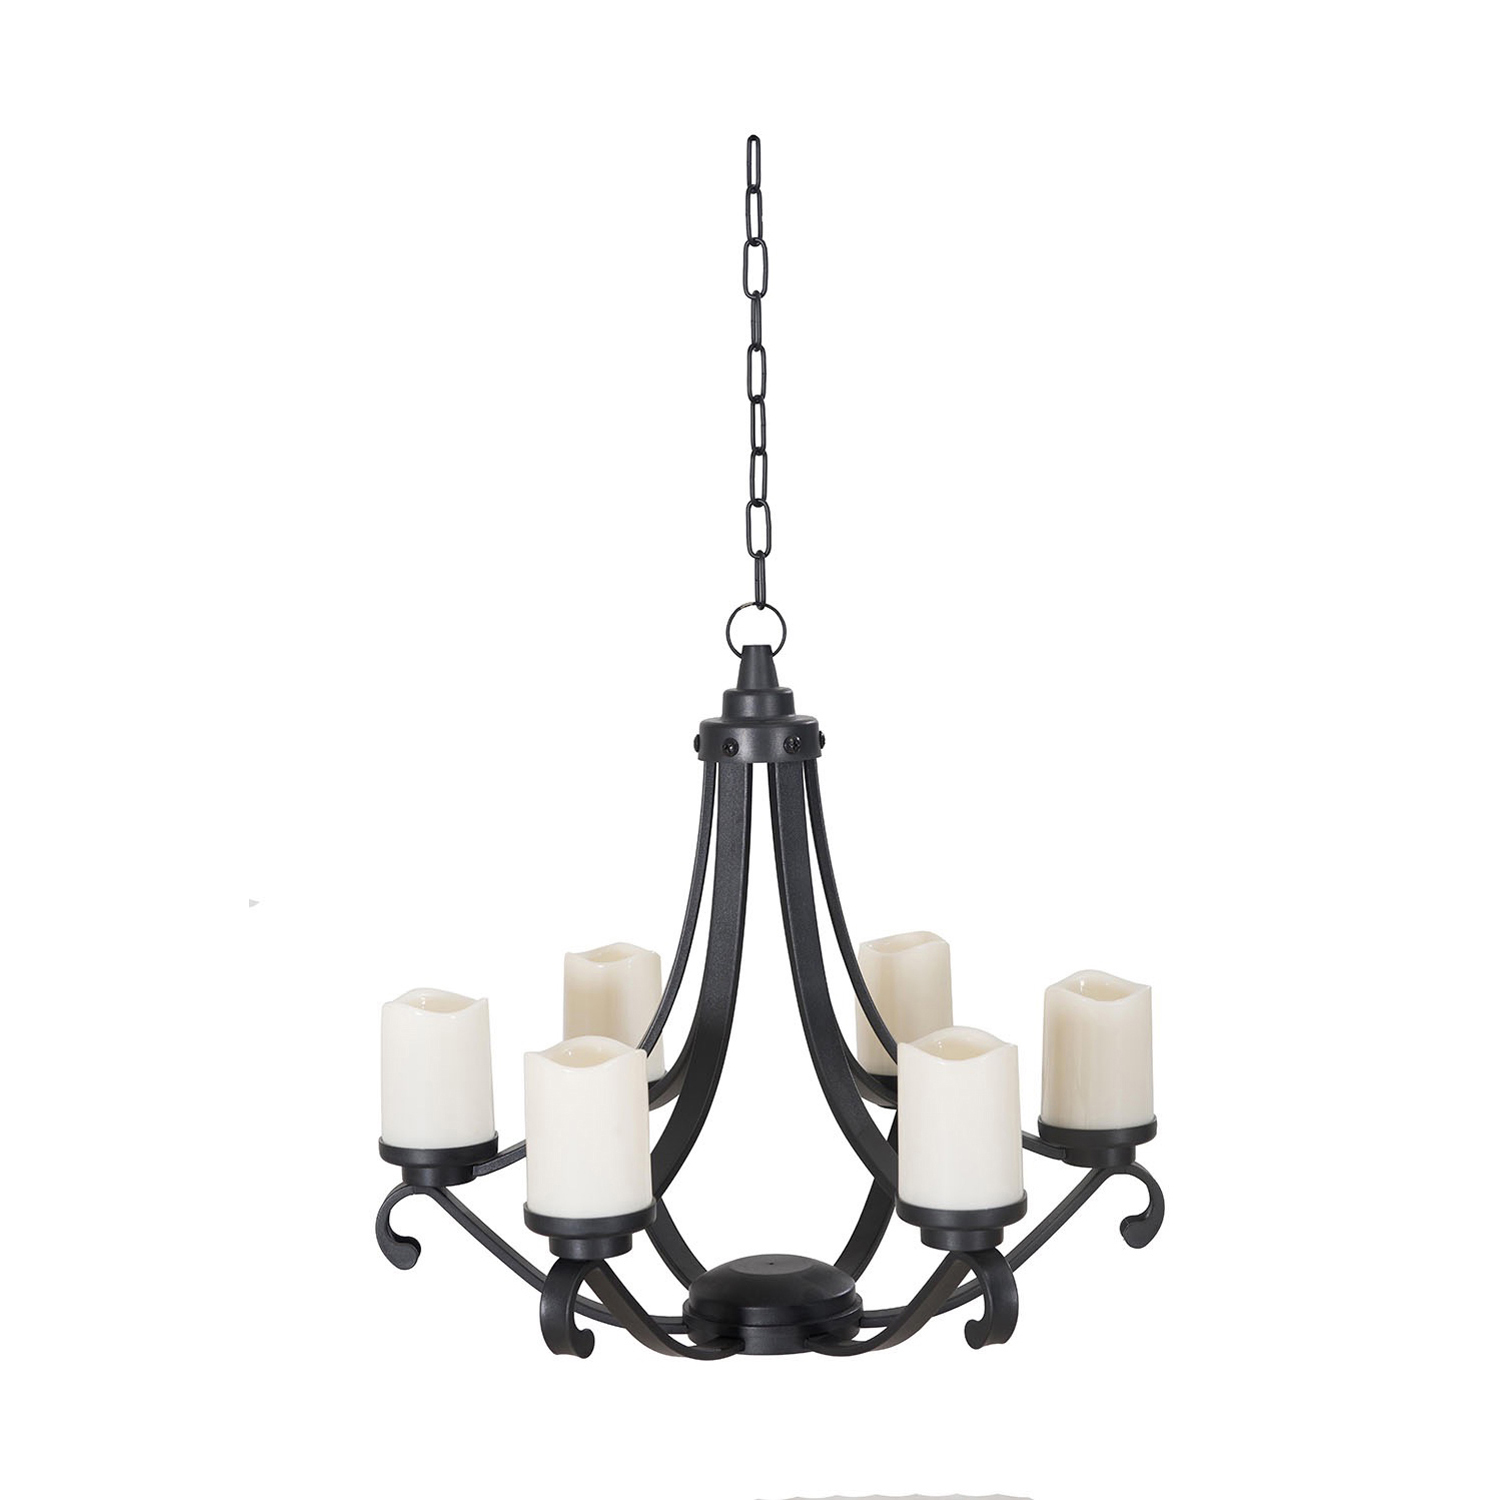 Black LED Outdoor Chandelier with Battery